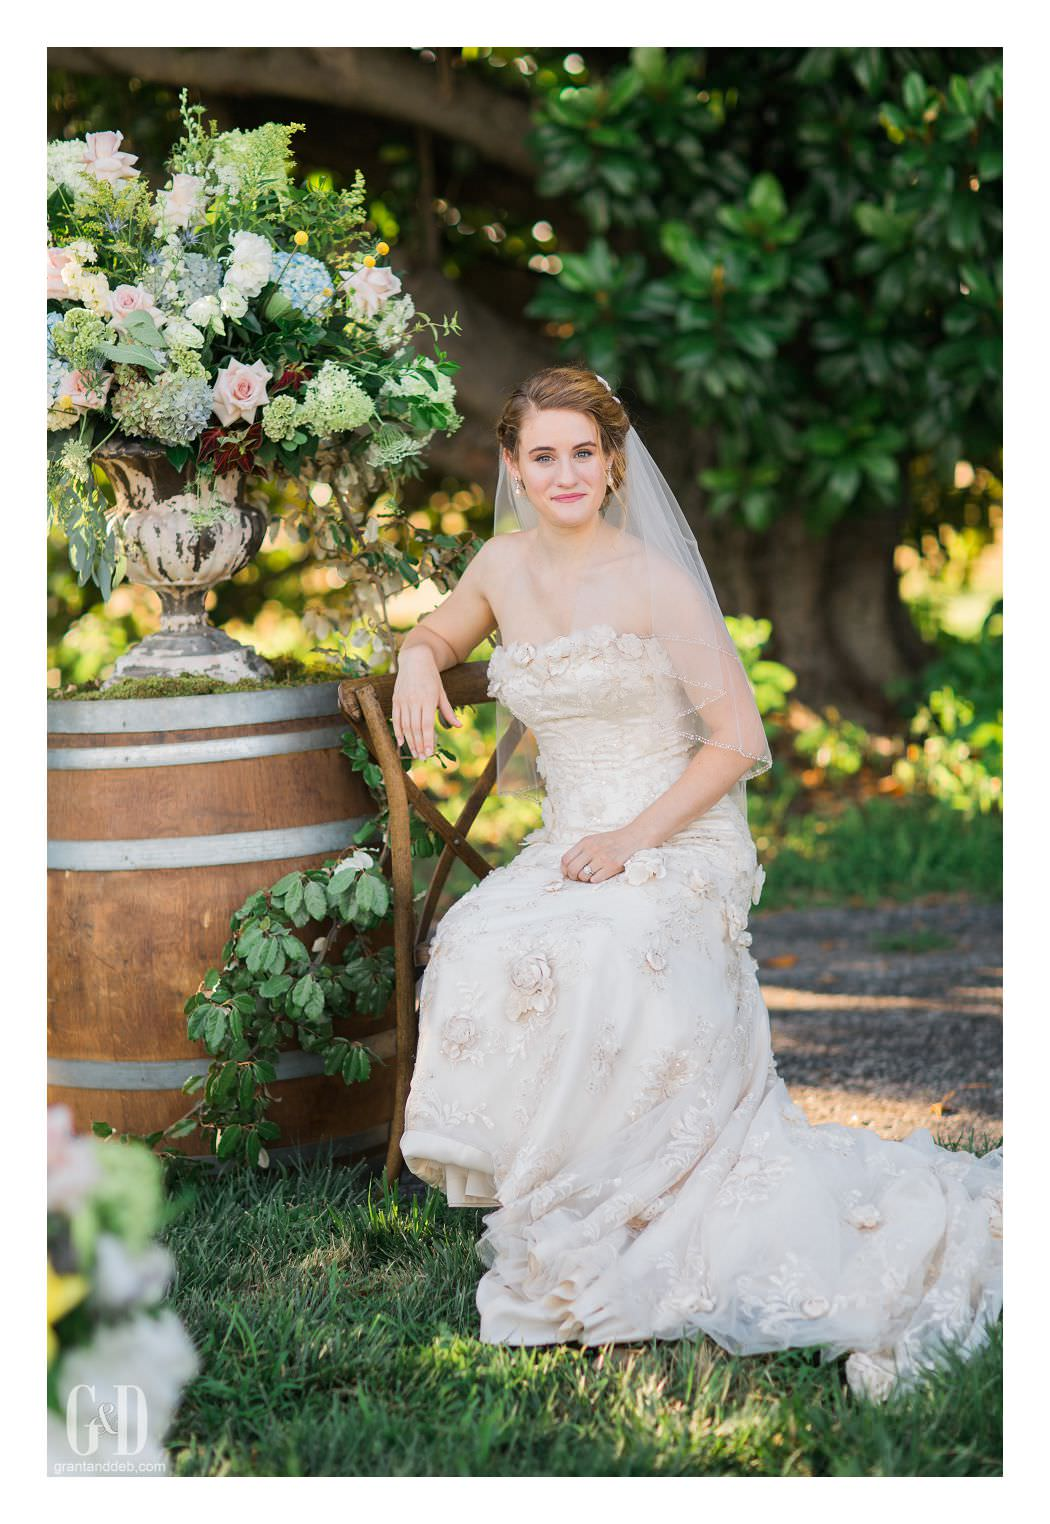 colonial heritage wedding photographers - colonial heritage wedding photographers